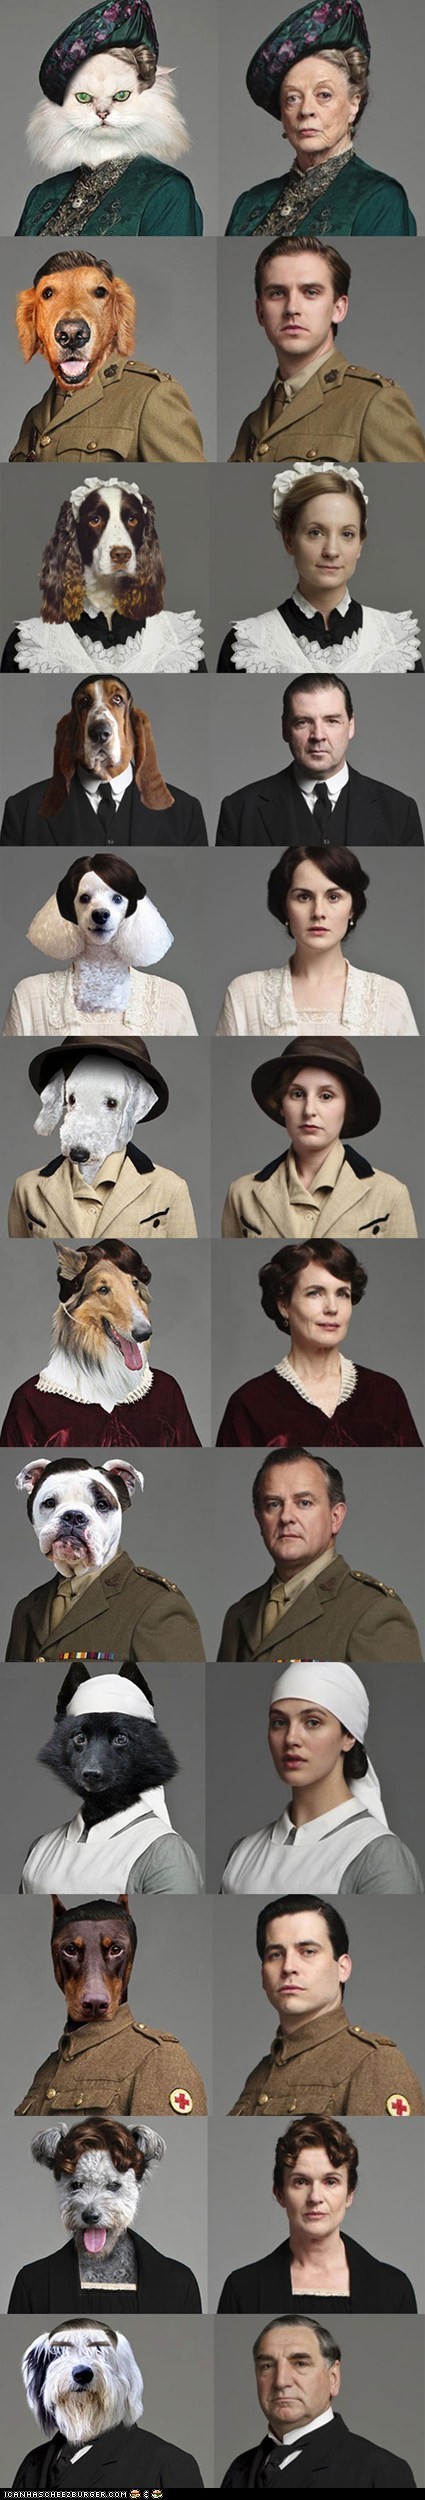 best of the week Cats downton abbey Hall of Fame look alikes photoshopped TV - 6009009152